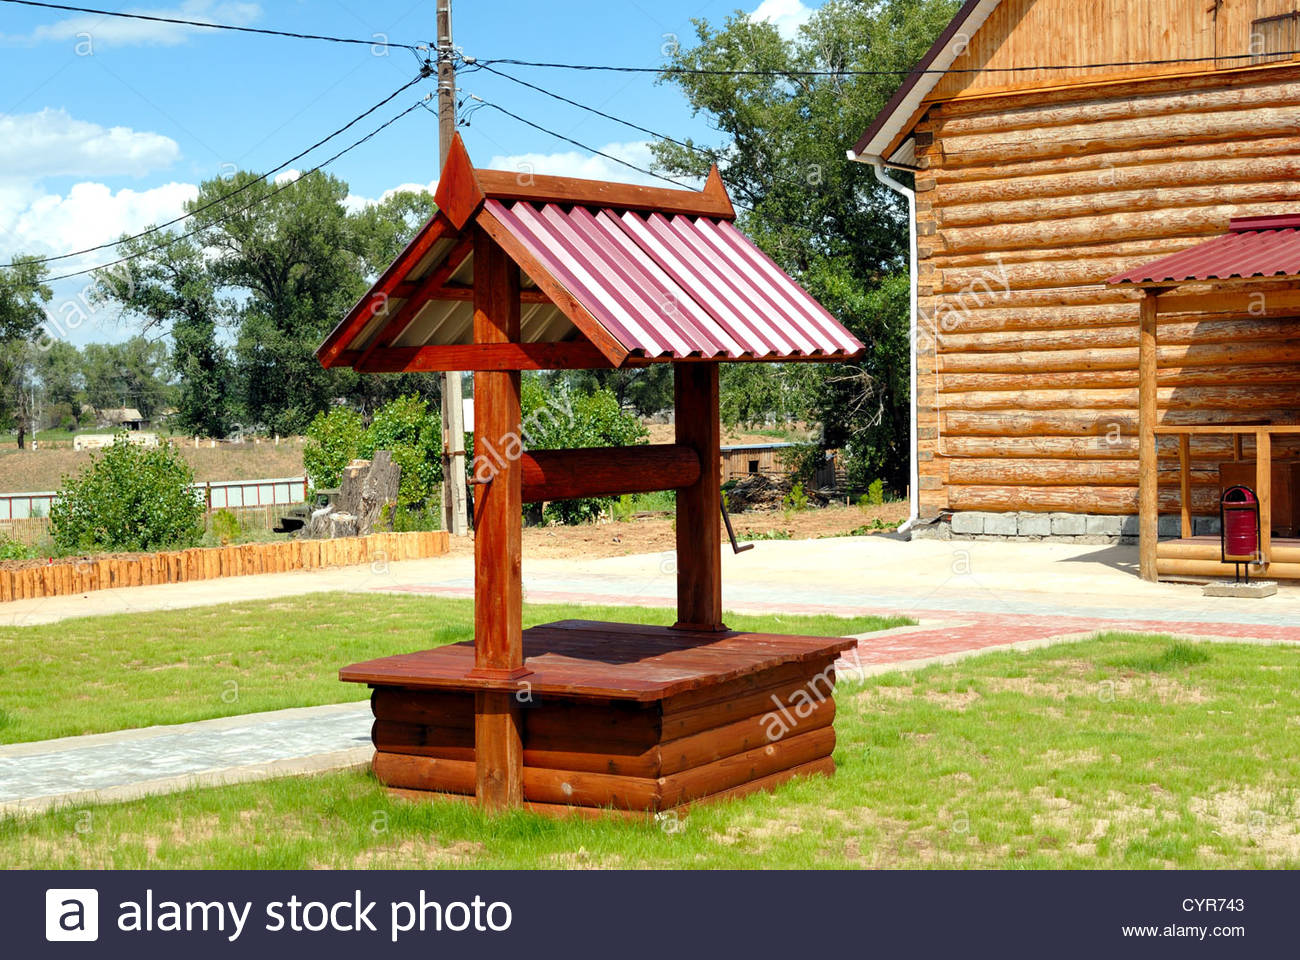 Wooden well stylised semi-antique against a rural landscape - Stock Image